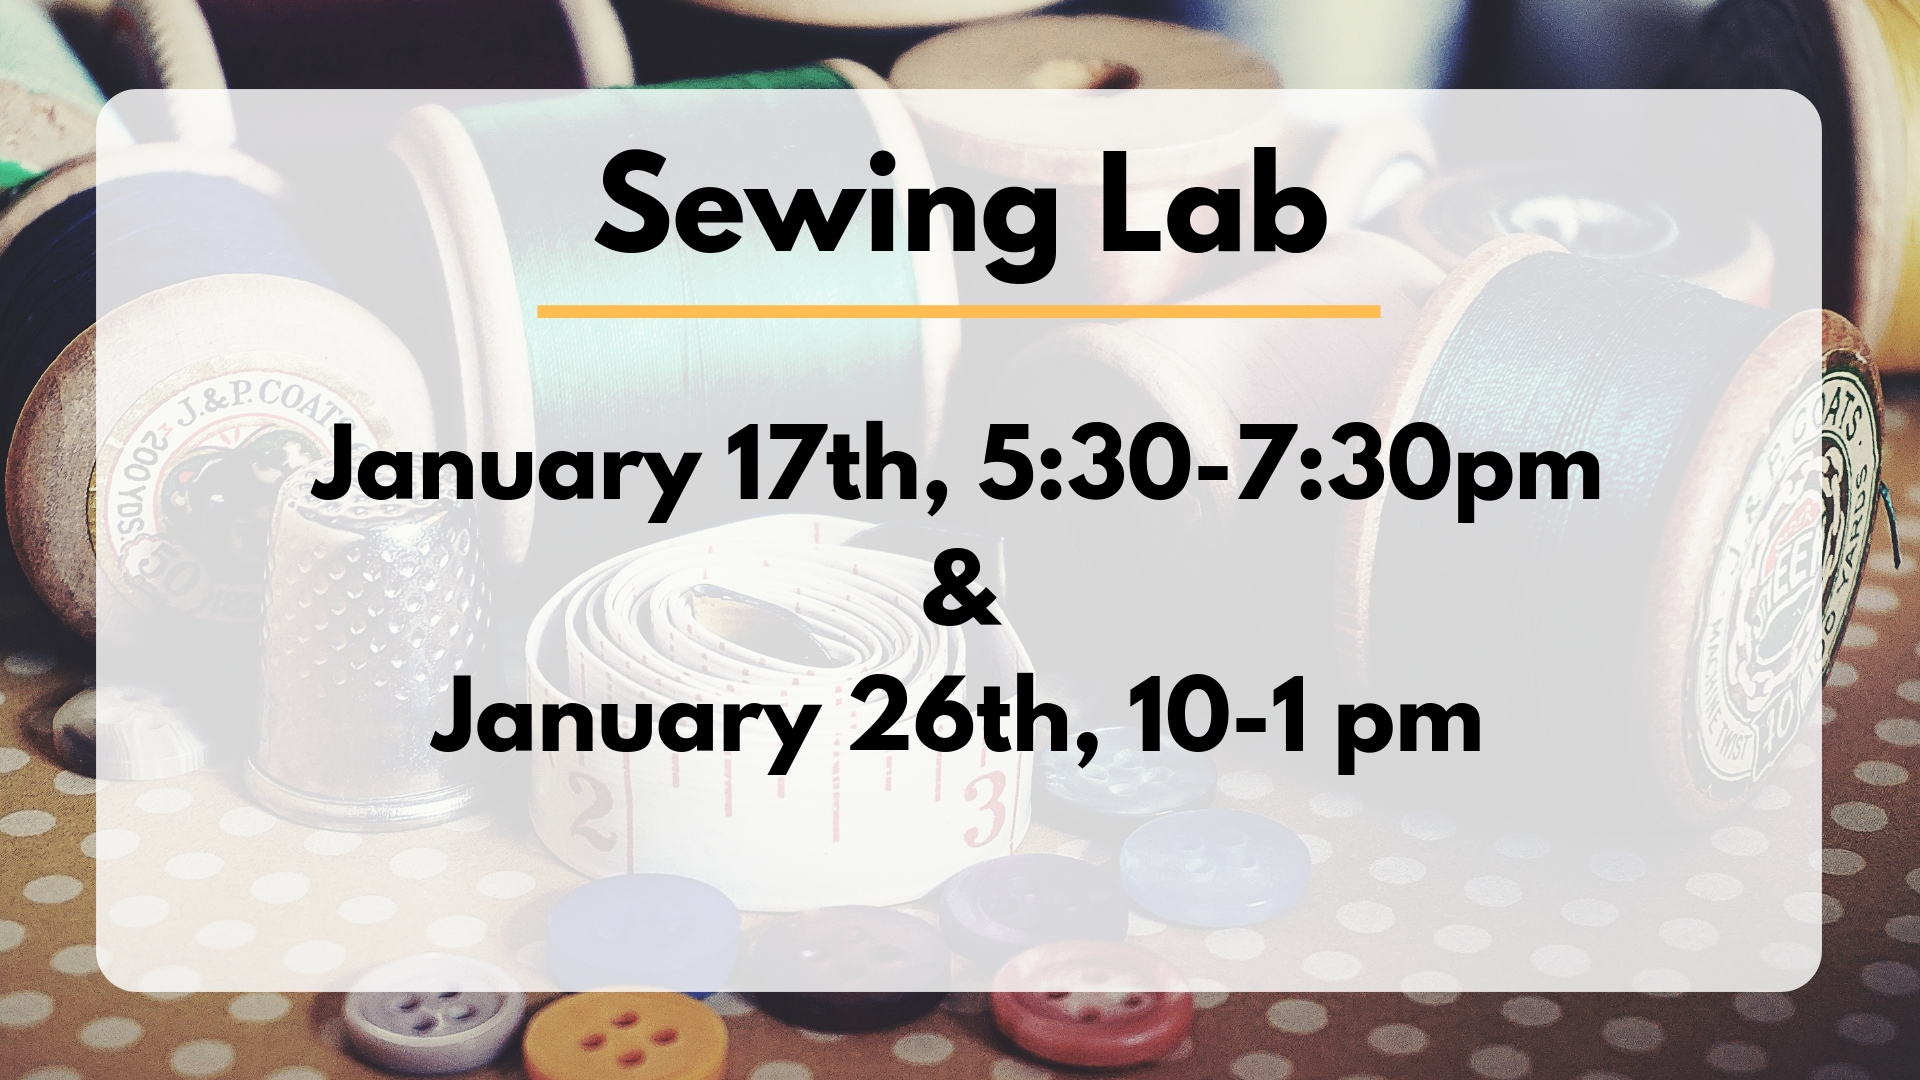 Sewing Lab and Driving School